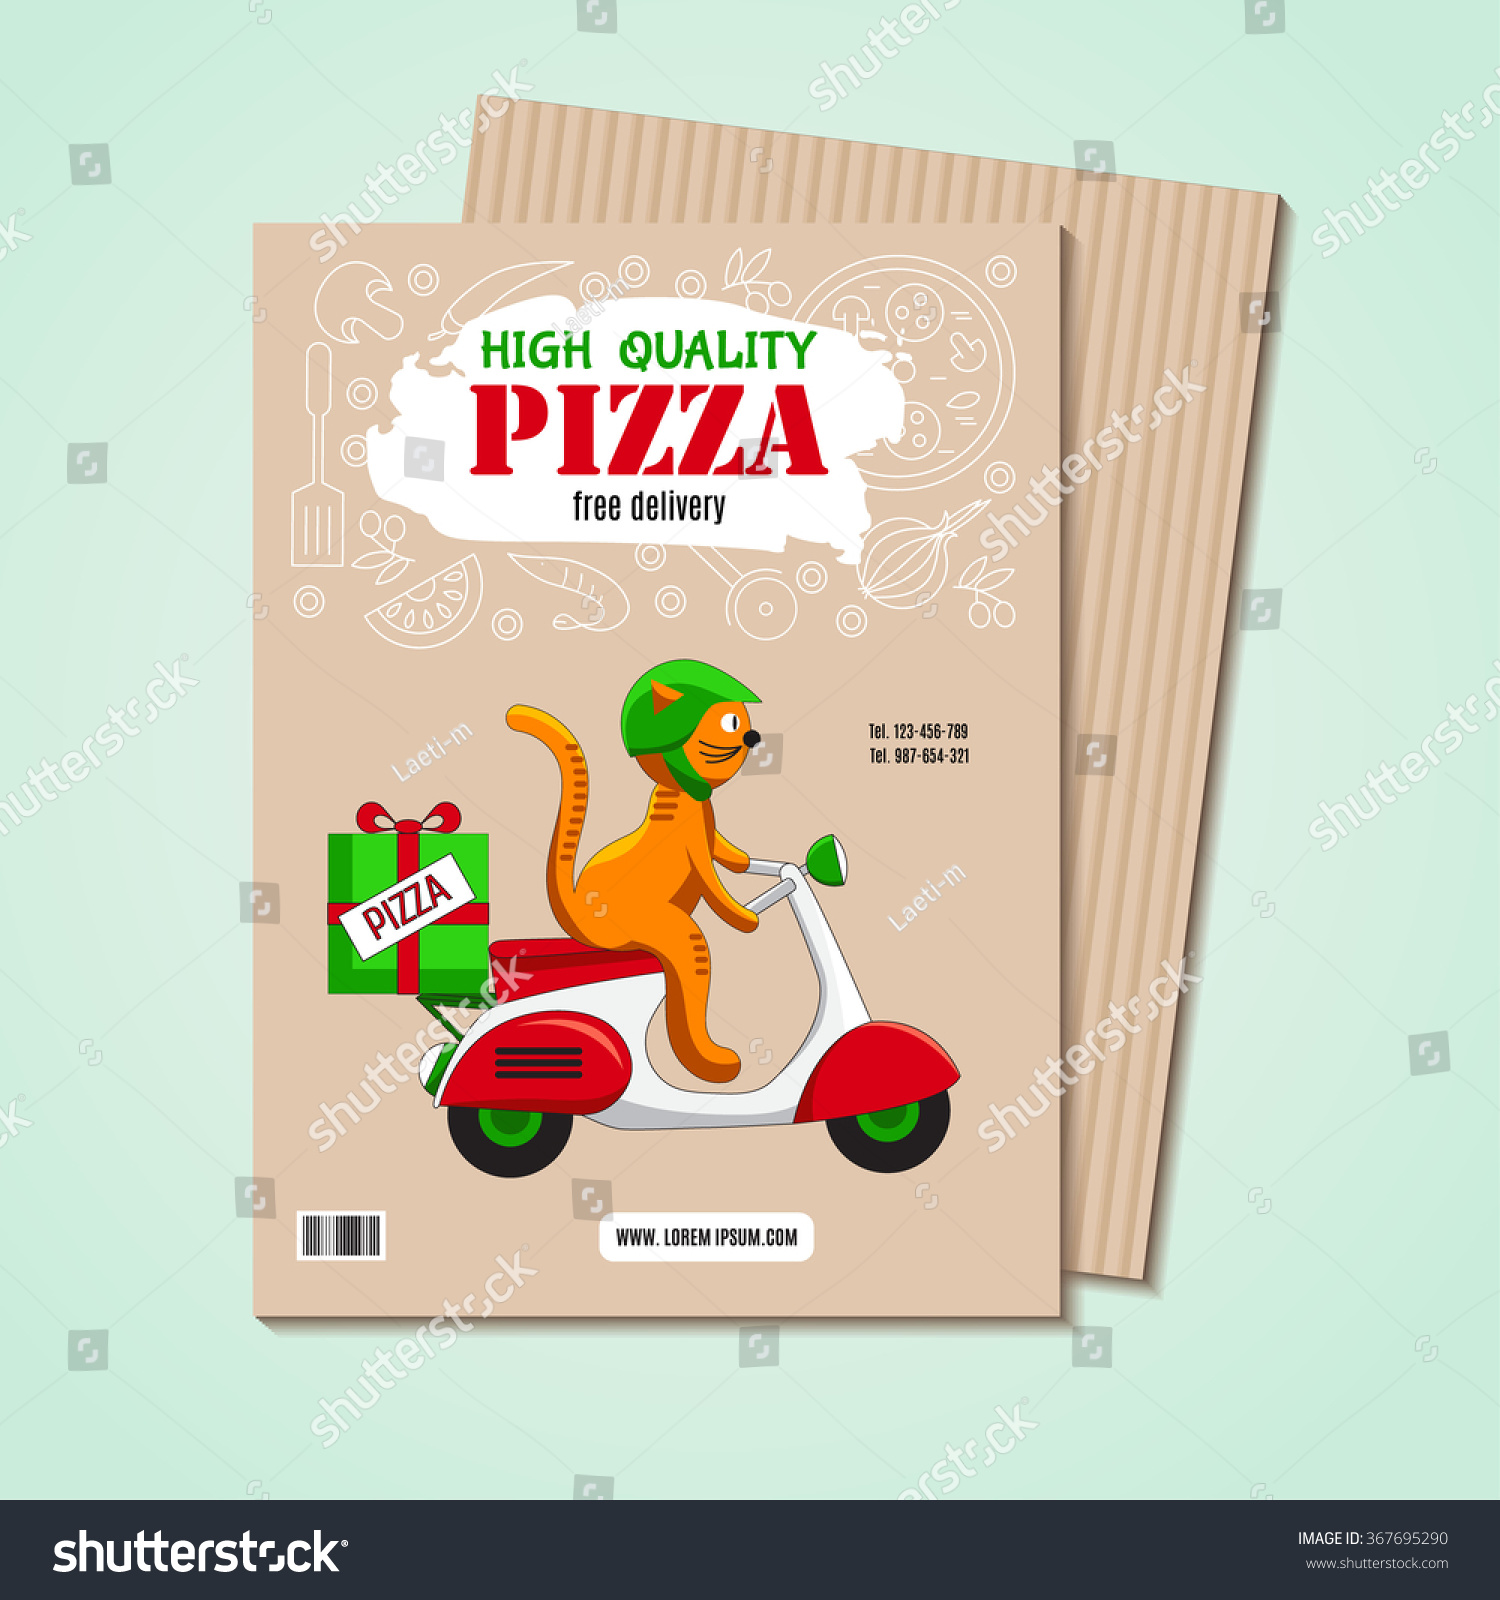 Business Card Flyer Image Ingredients Pizza Stock Vector 367695290 ...